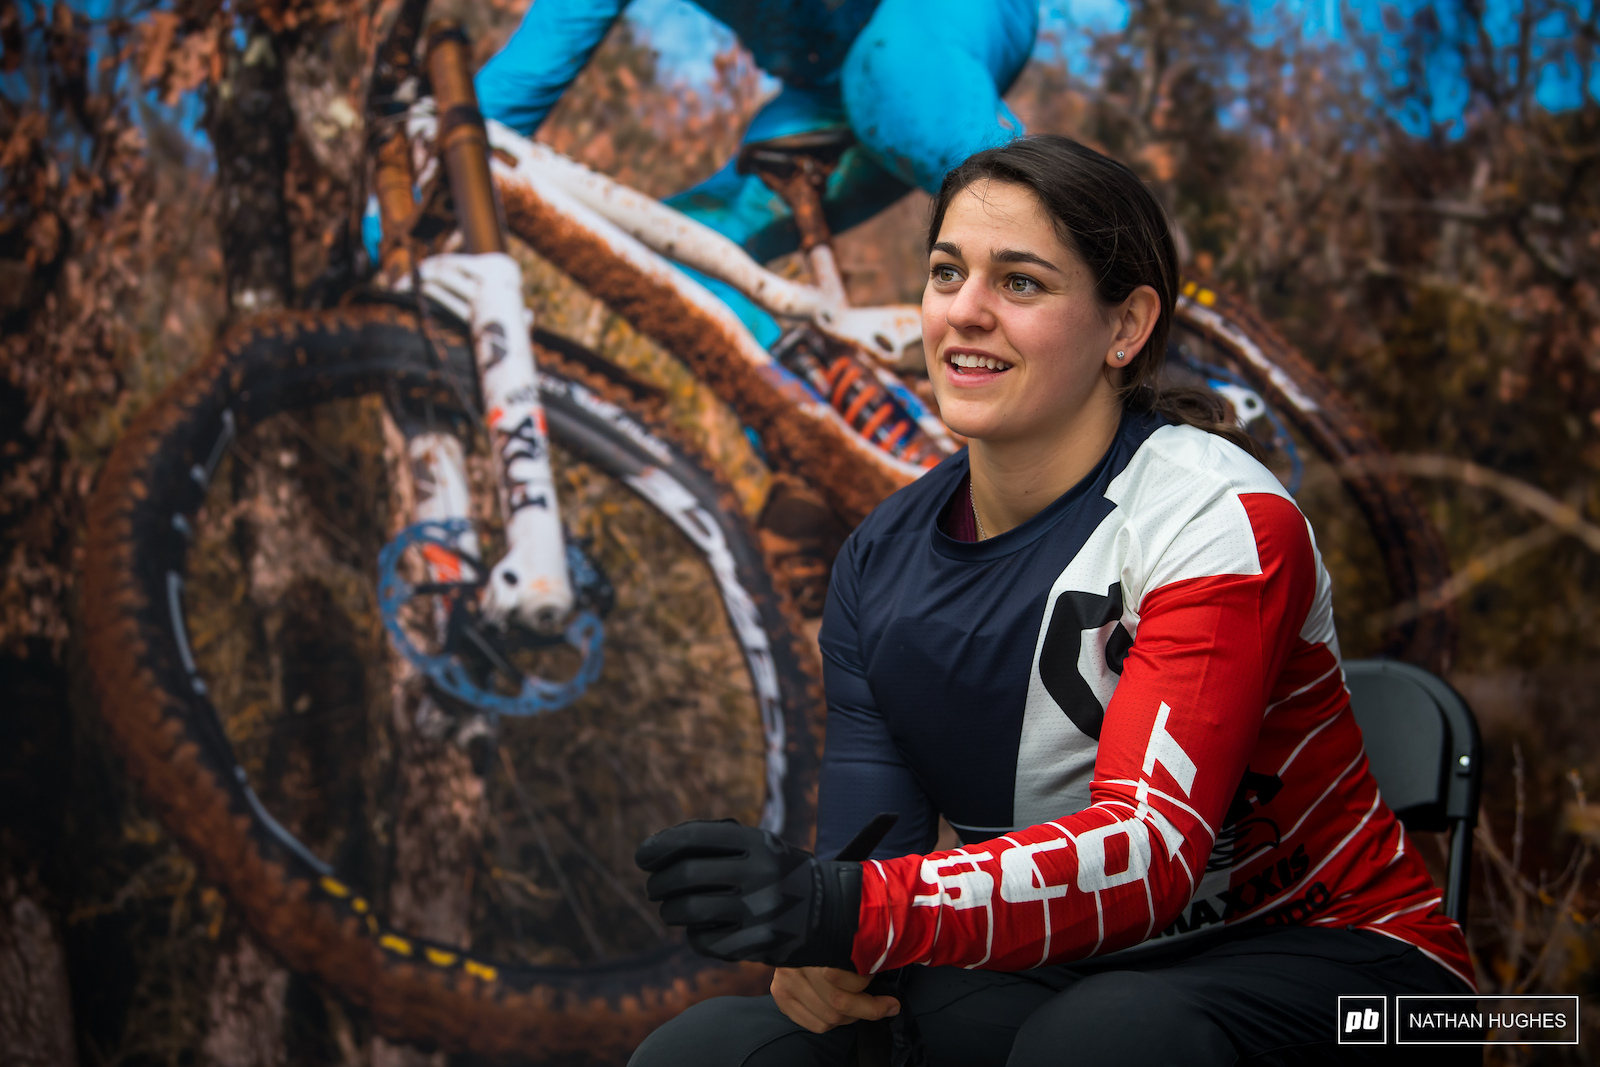 Marine Cabirou continues her road to recovery after her huge crash on the Les Gets road-gap.